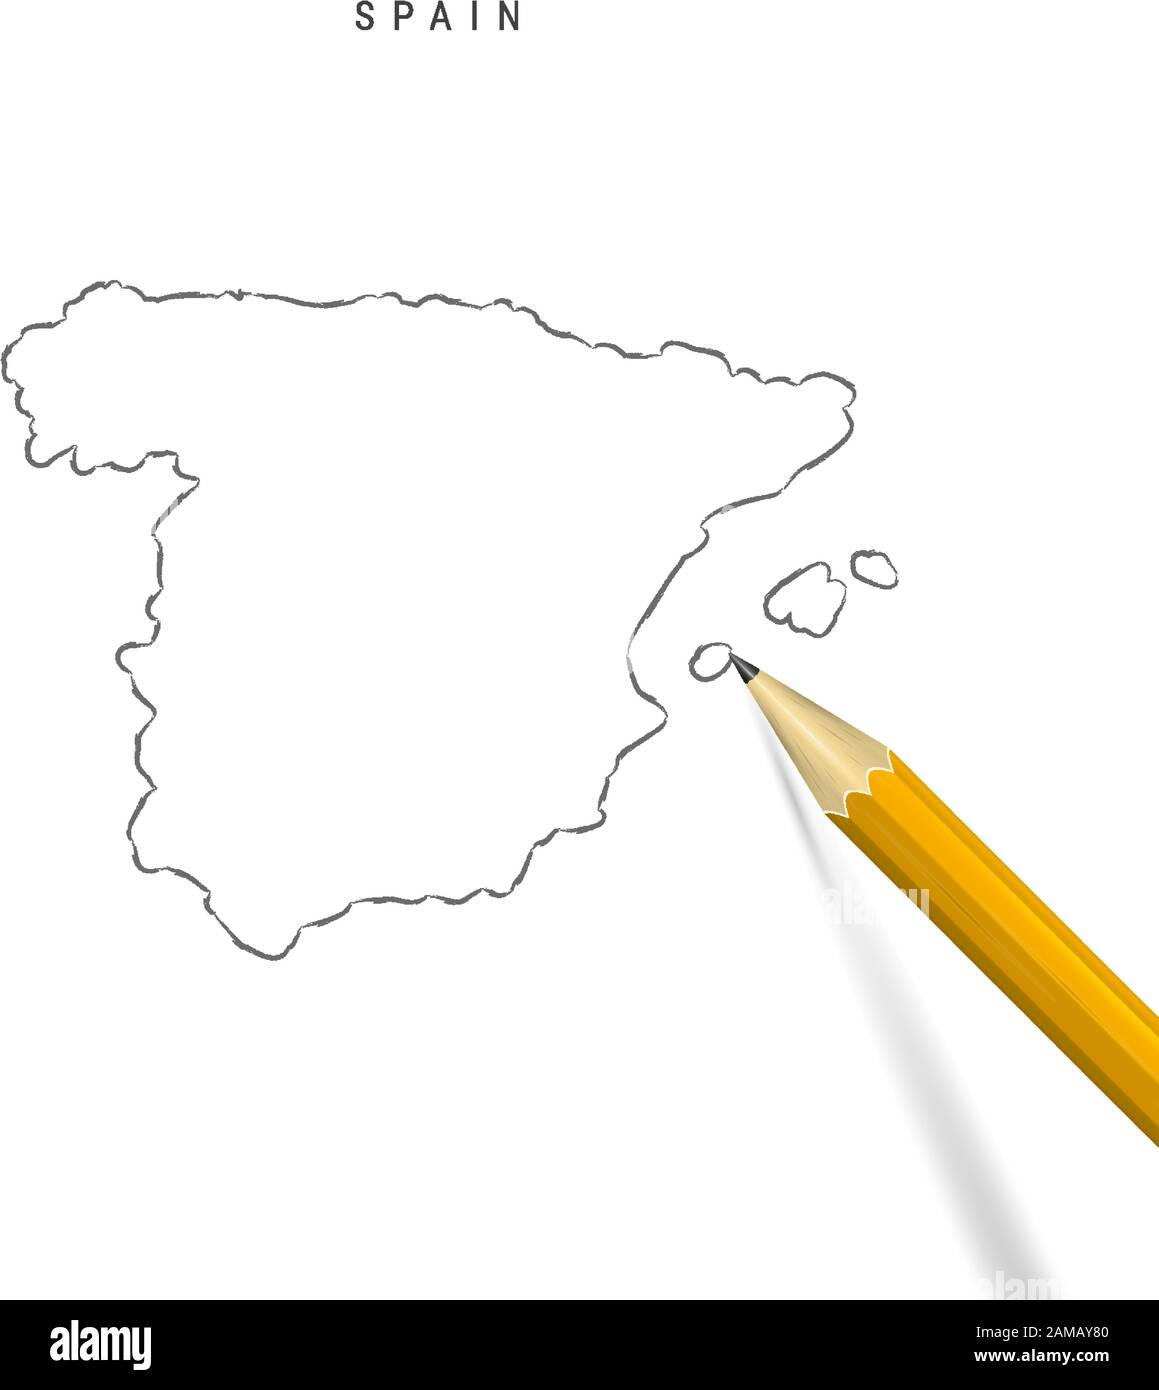 Picture of: Spain Map Outline High Resolution Stock Photography And Images Alamy